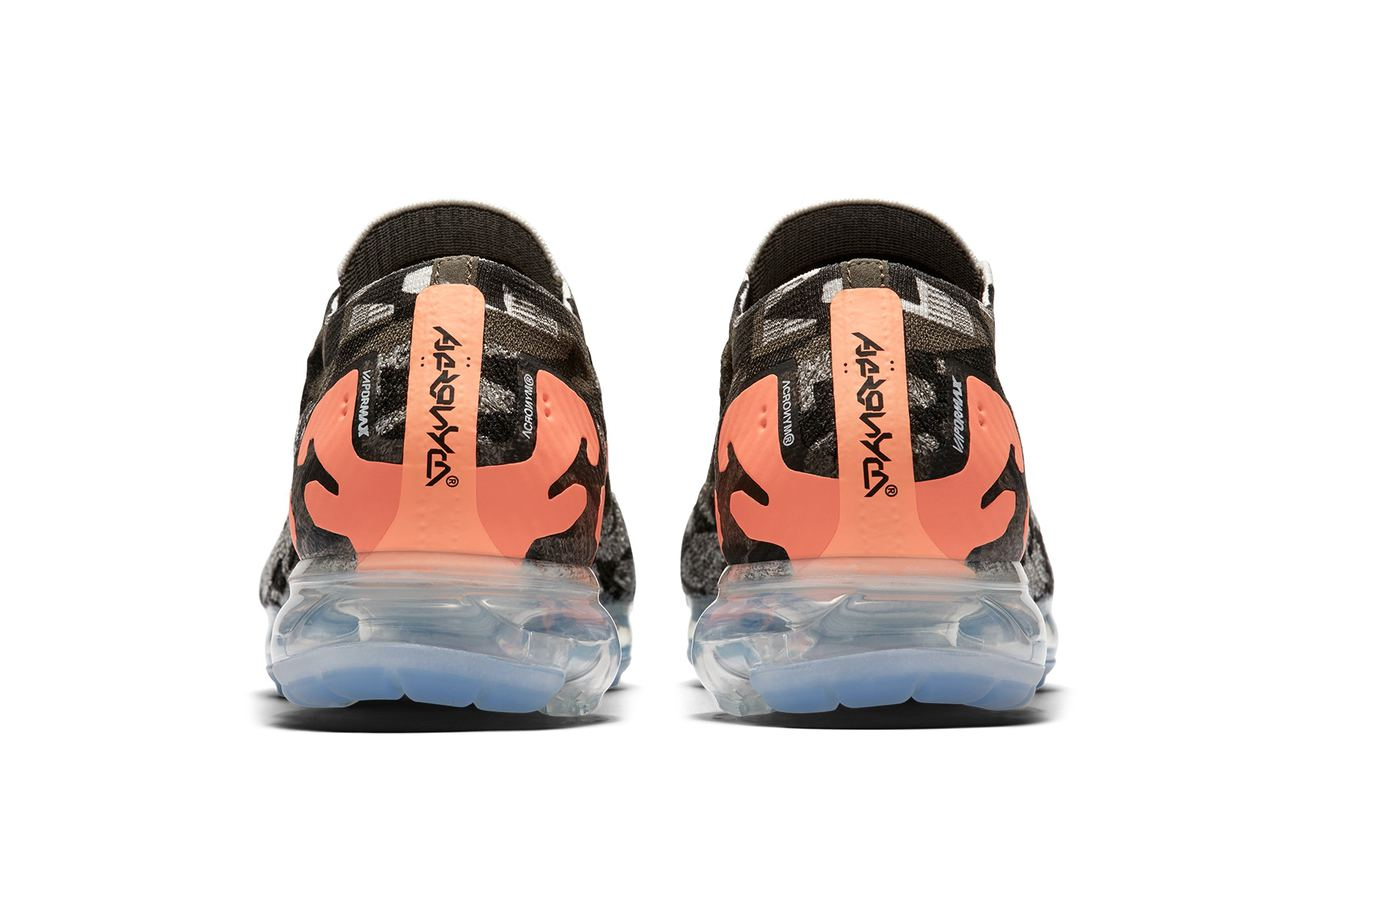 """80aaddb4ff7 Acronym x Nike Air VaporMax Moc 2 """"Thirsty Bandit"""" Release Date  May 15"""